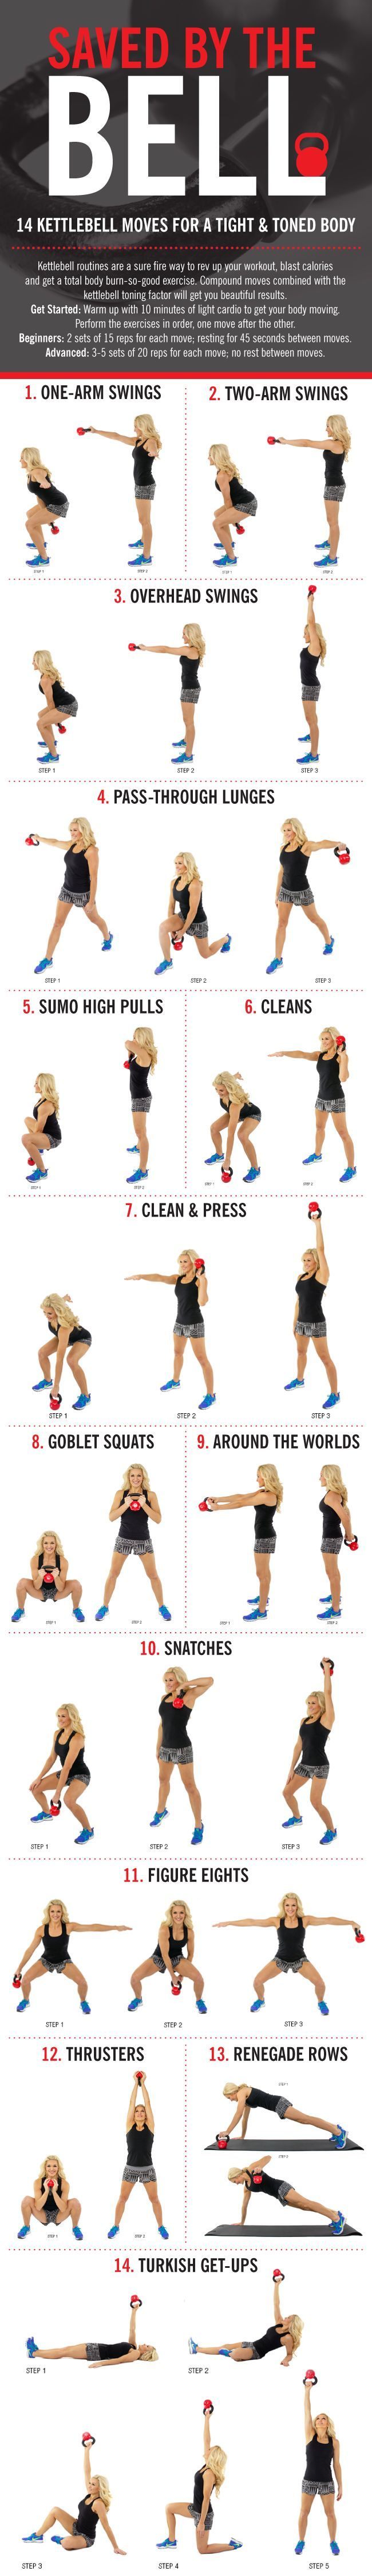 Tighten and tone with these amazing kettlebell moves!